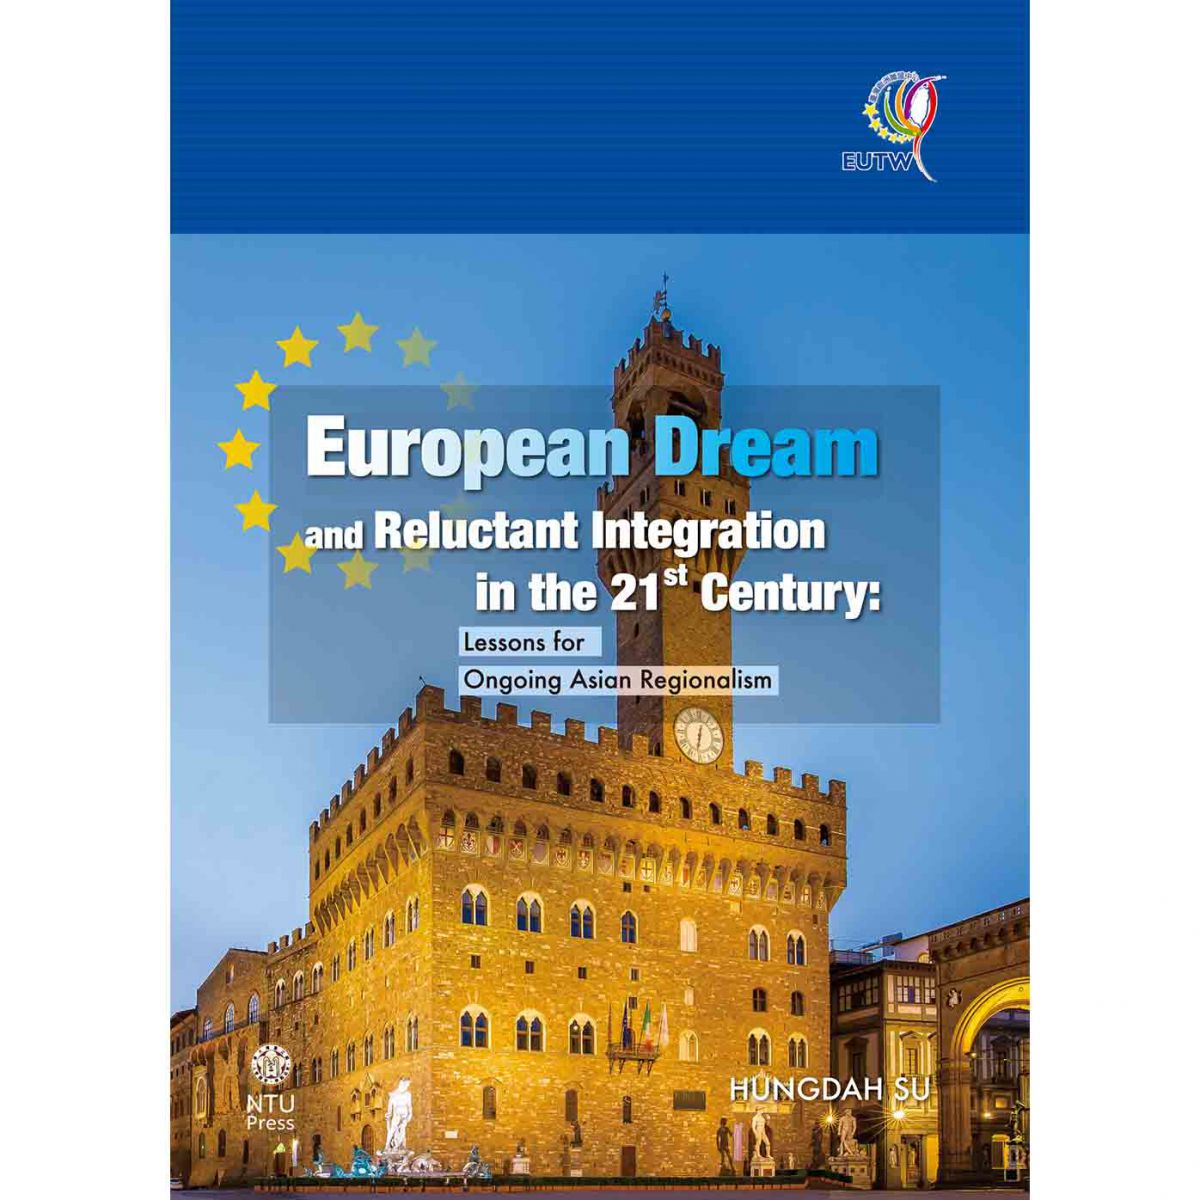 European Dream and Reluctant Integration in the 21st Century出版